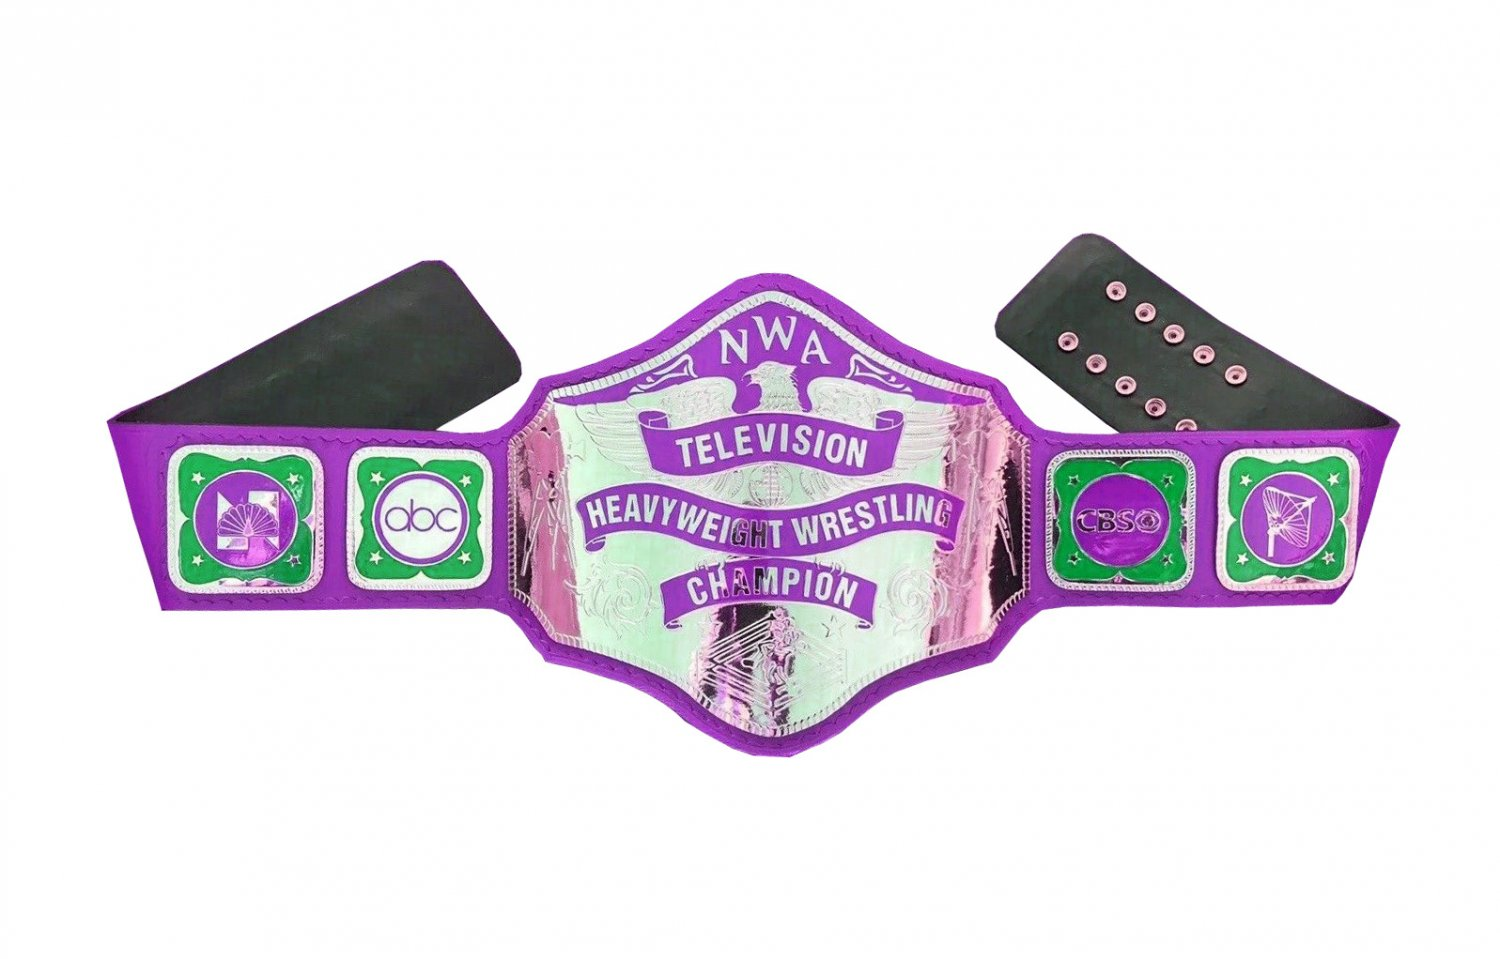 NWA TELEVISION HEAVYWEIGHT WRESTLING CHAMPIONSHIP PURPLE LEATHER STRAP ADULT SIZE